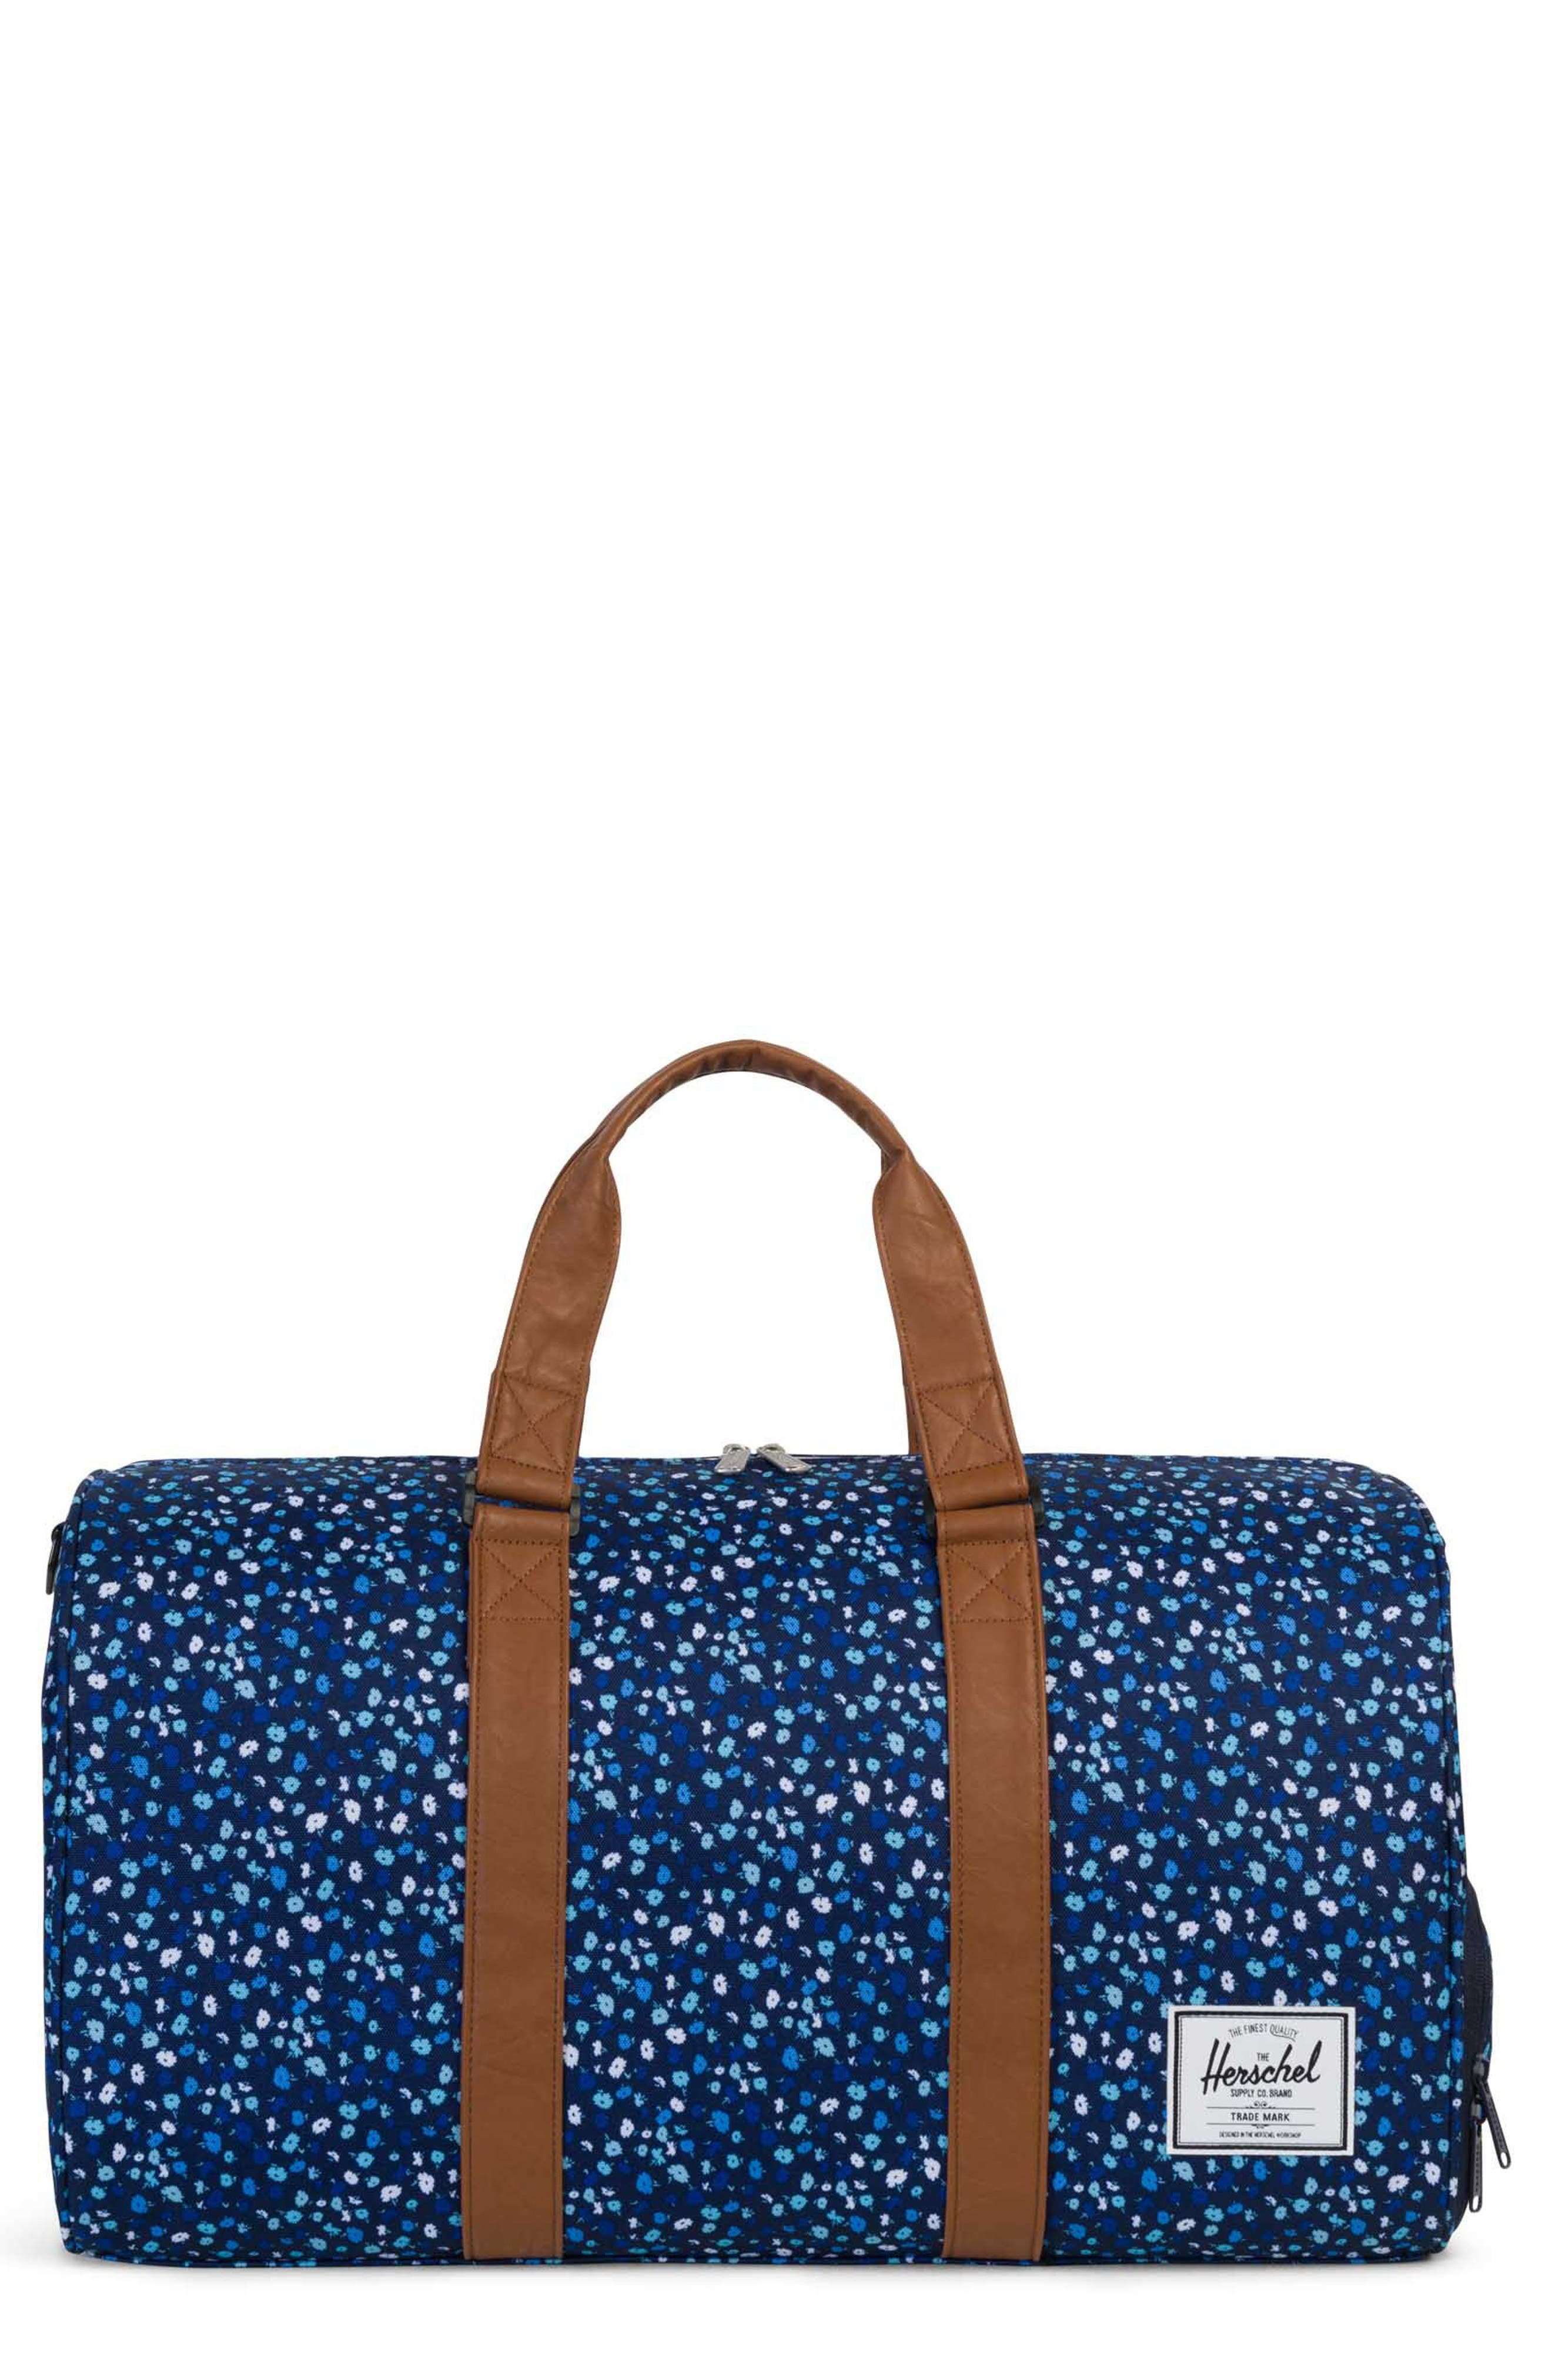 Novel Floral Pattern Duffel Bag,                             Main thumbnail 1, color,                             Peacoat Mini Floral